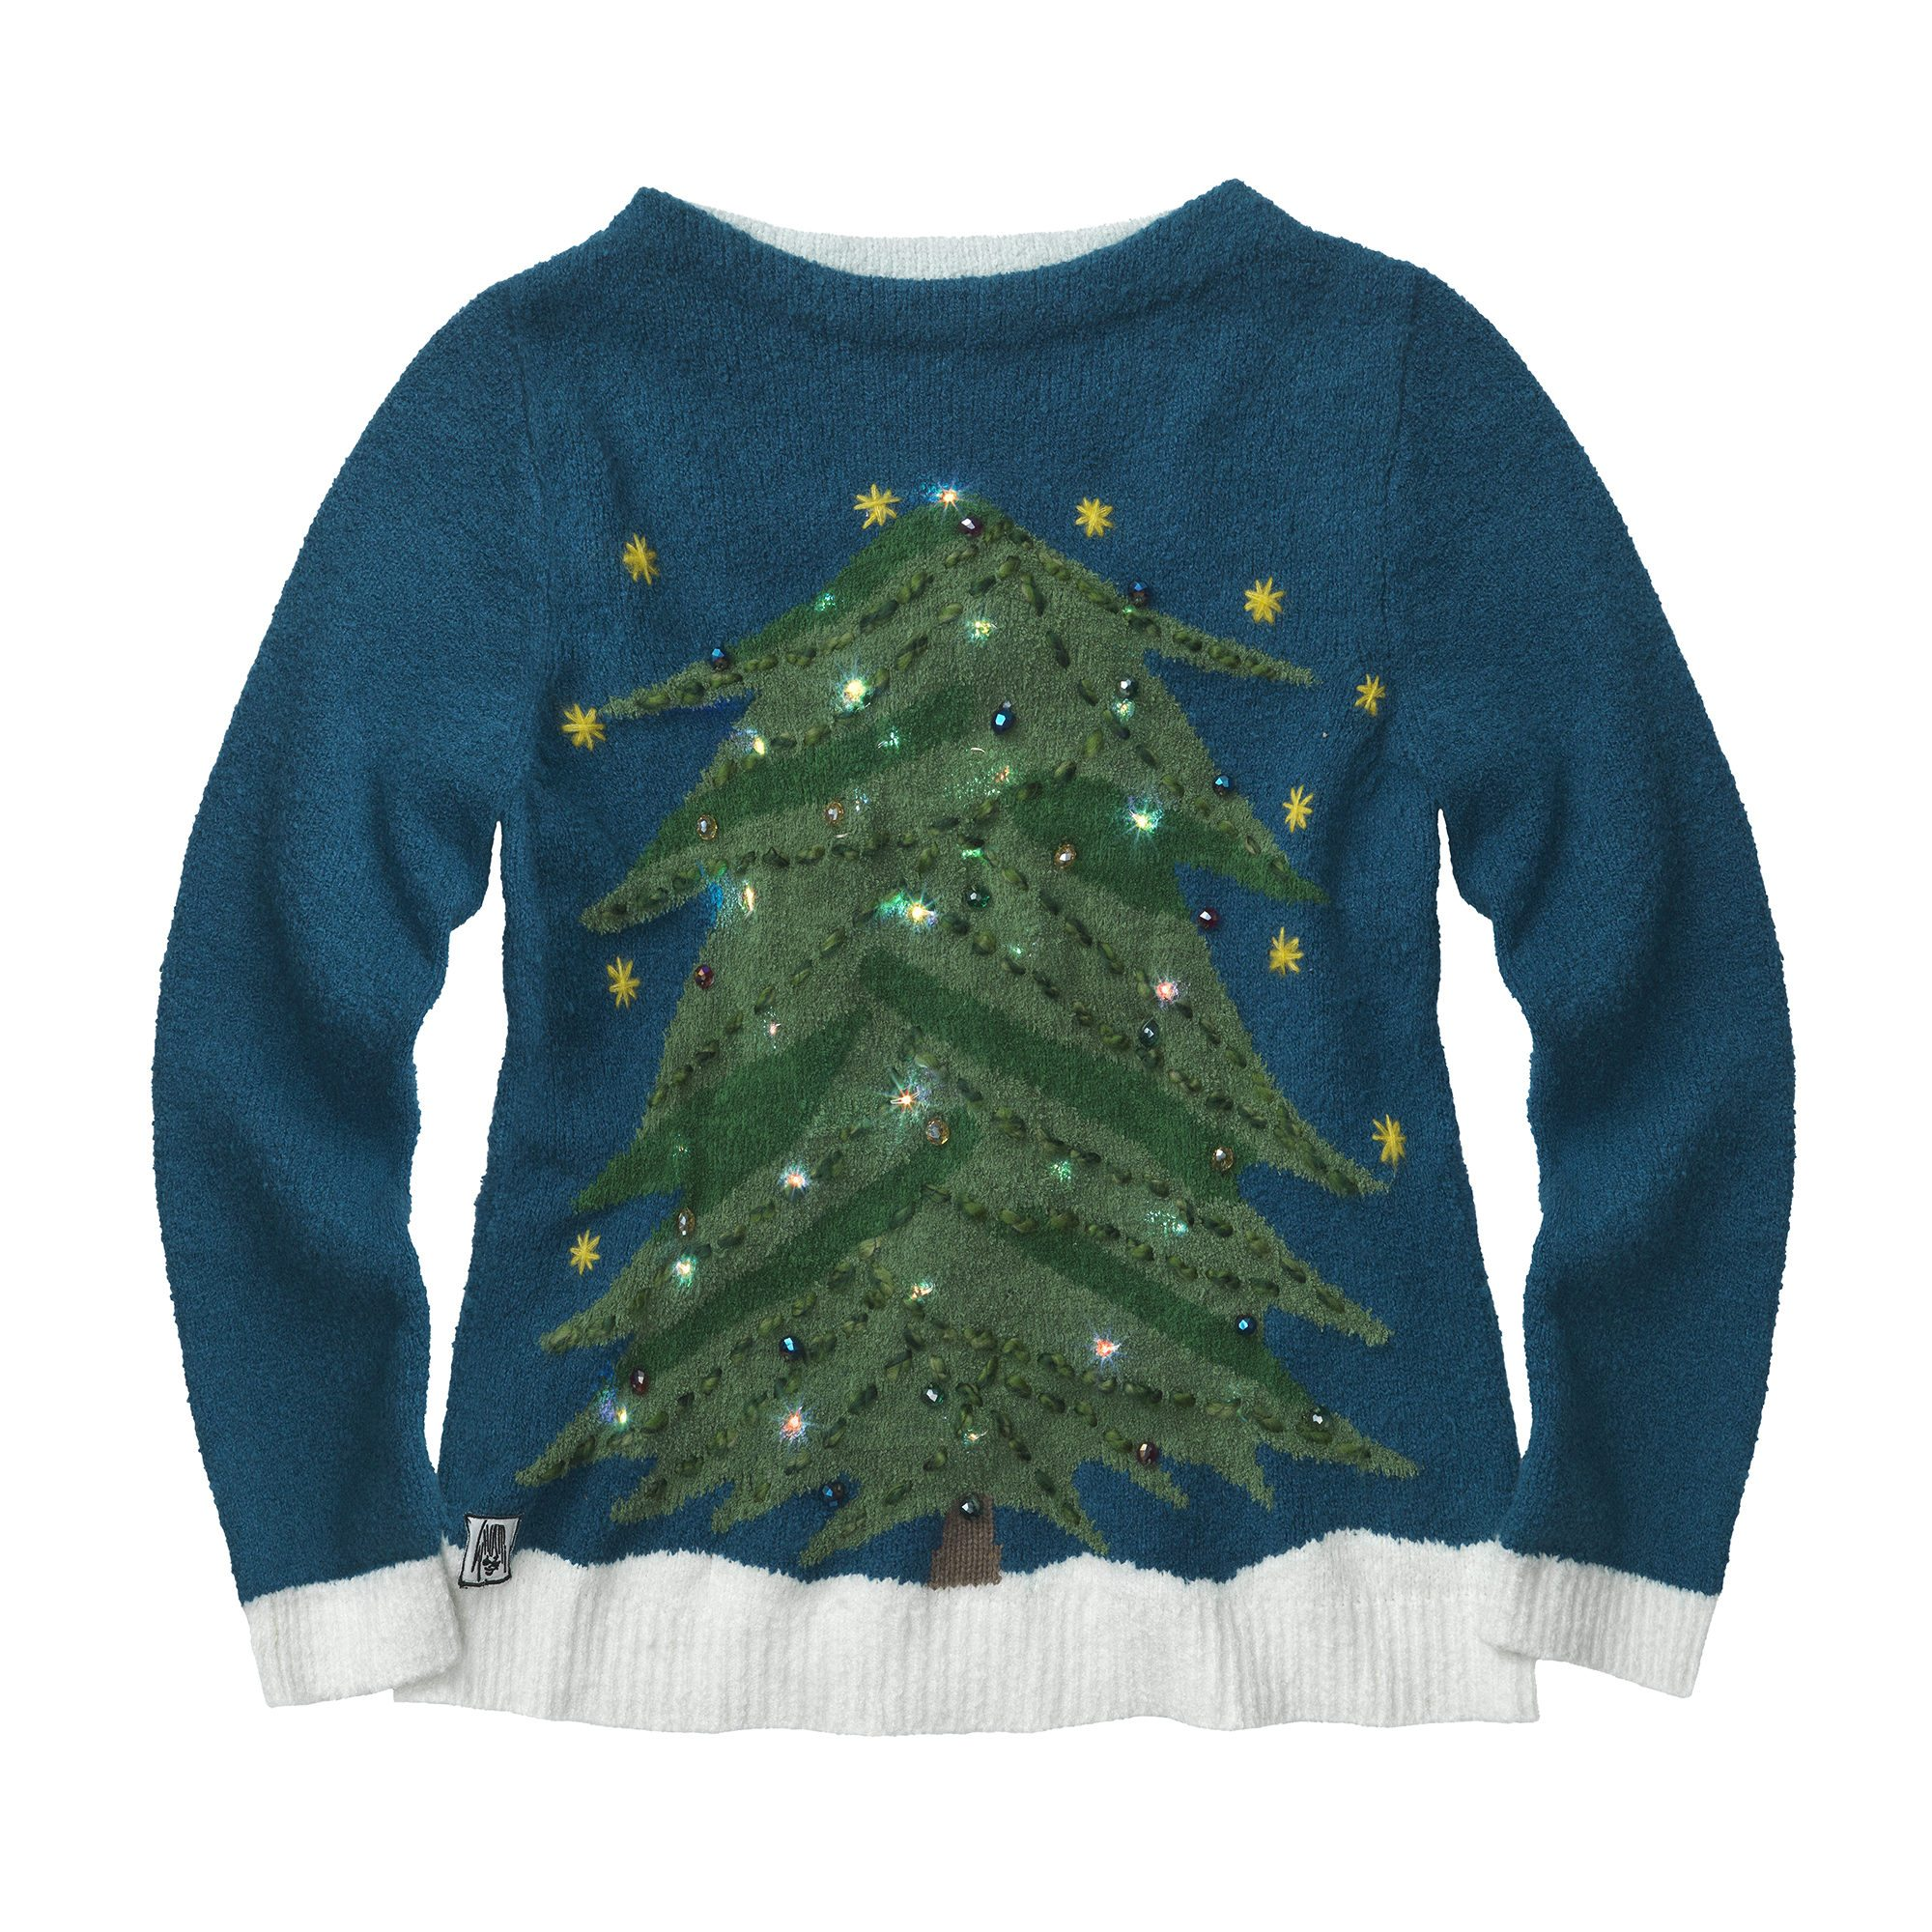 WHOOPI GOLDBERG Light Up Christmas Tree Sweater, $179